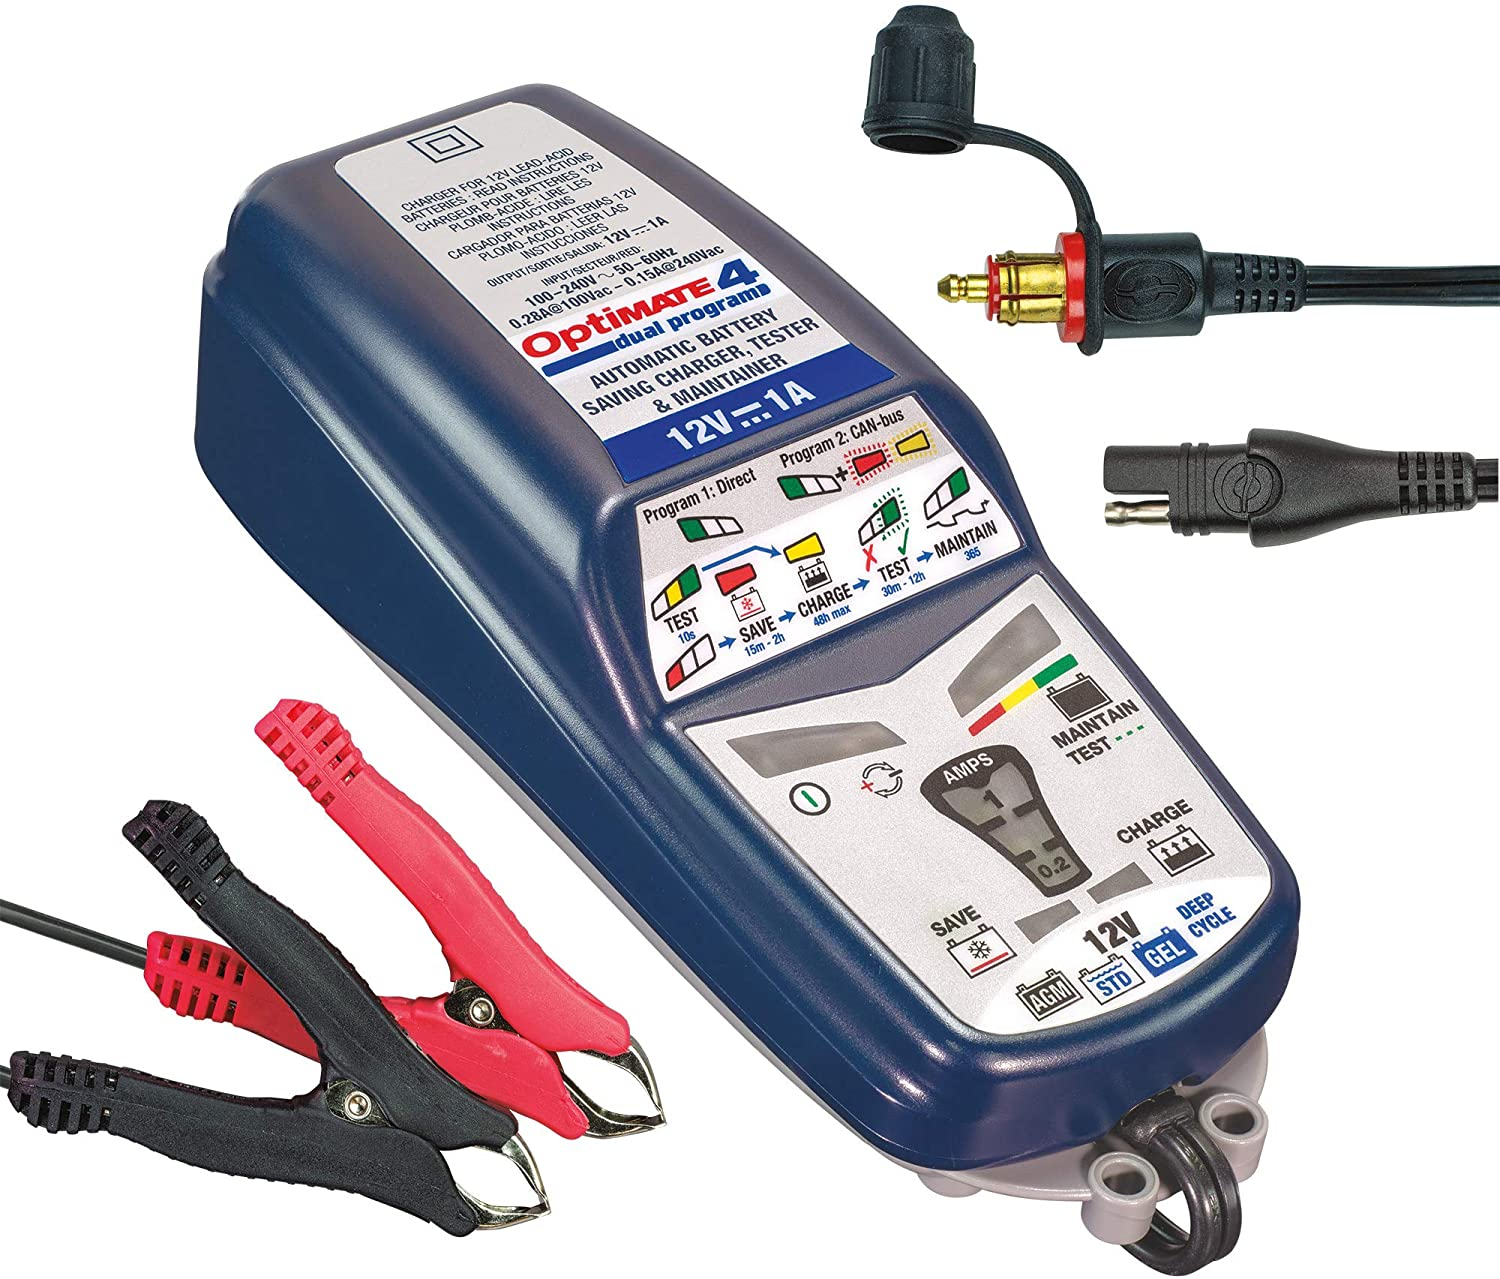 OptiMATE 4 CAN-bus edition, TM-351 8/9-step 12V 1A battery Saving charger-tester-maintainer: Automotive